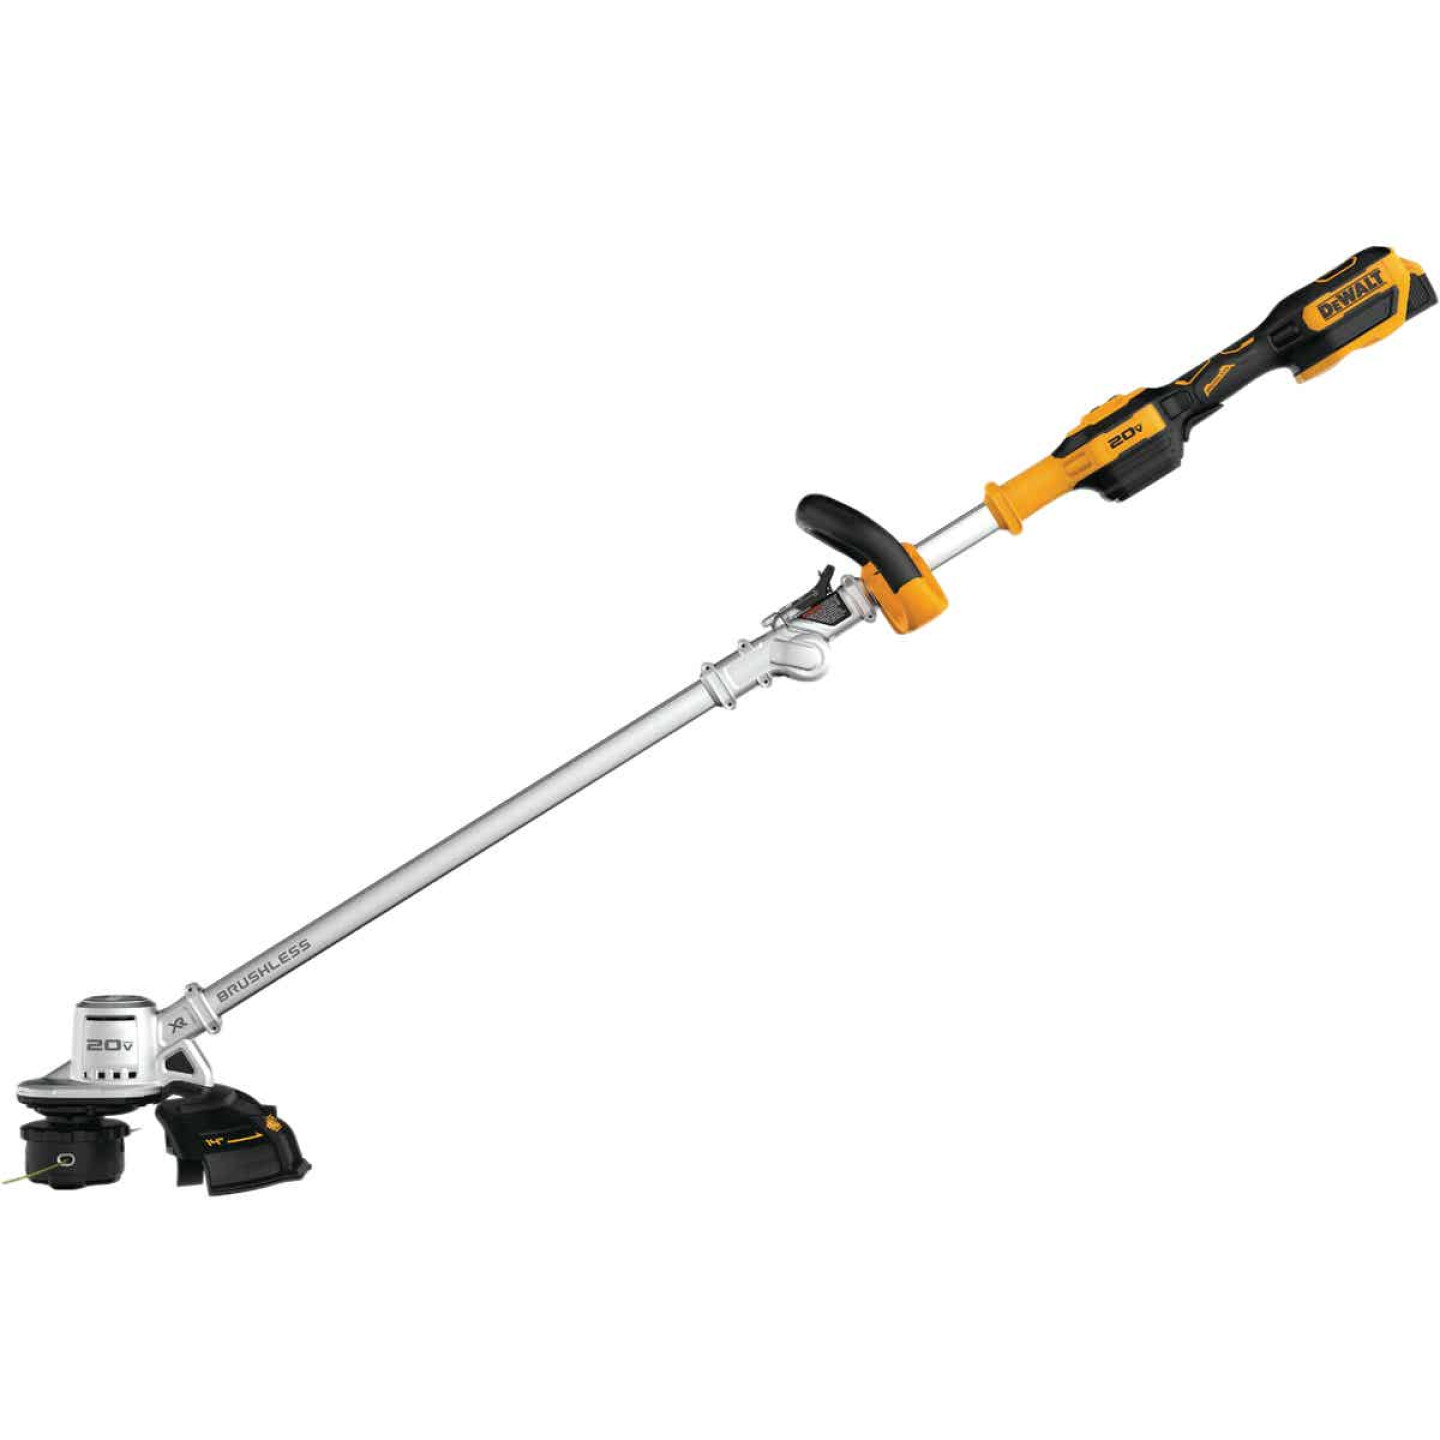 DeWalt 20V MAX 14 In. Folding String Trimmer Image 6